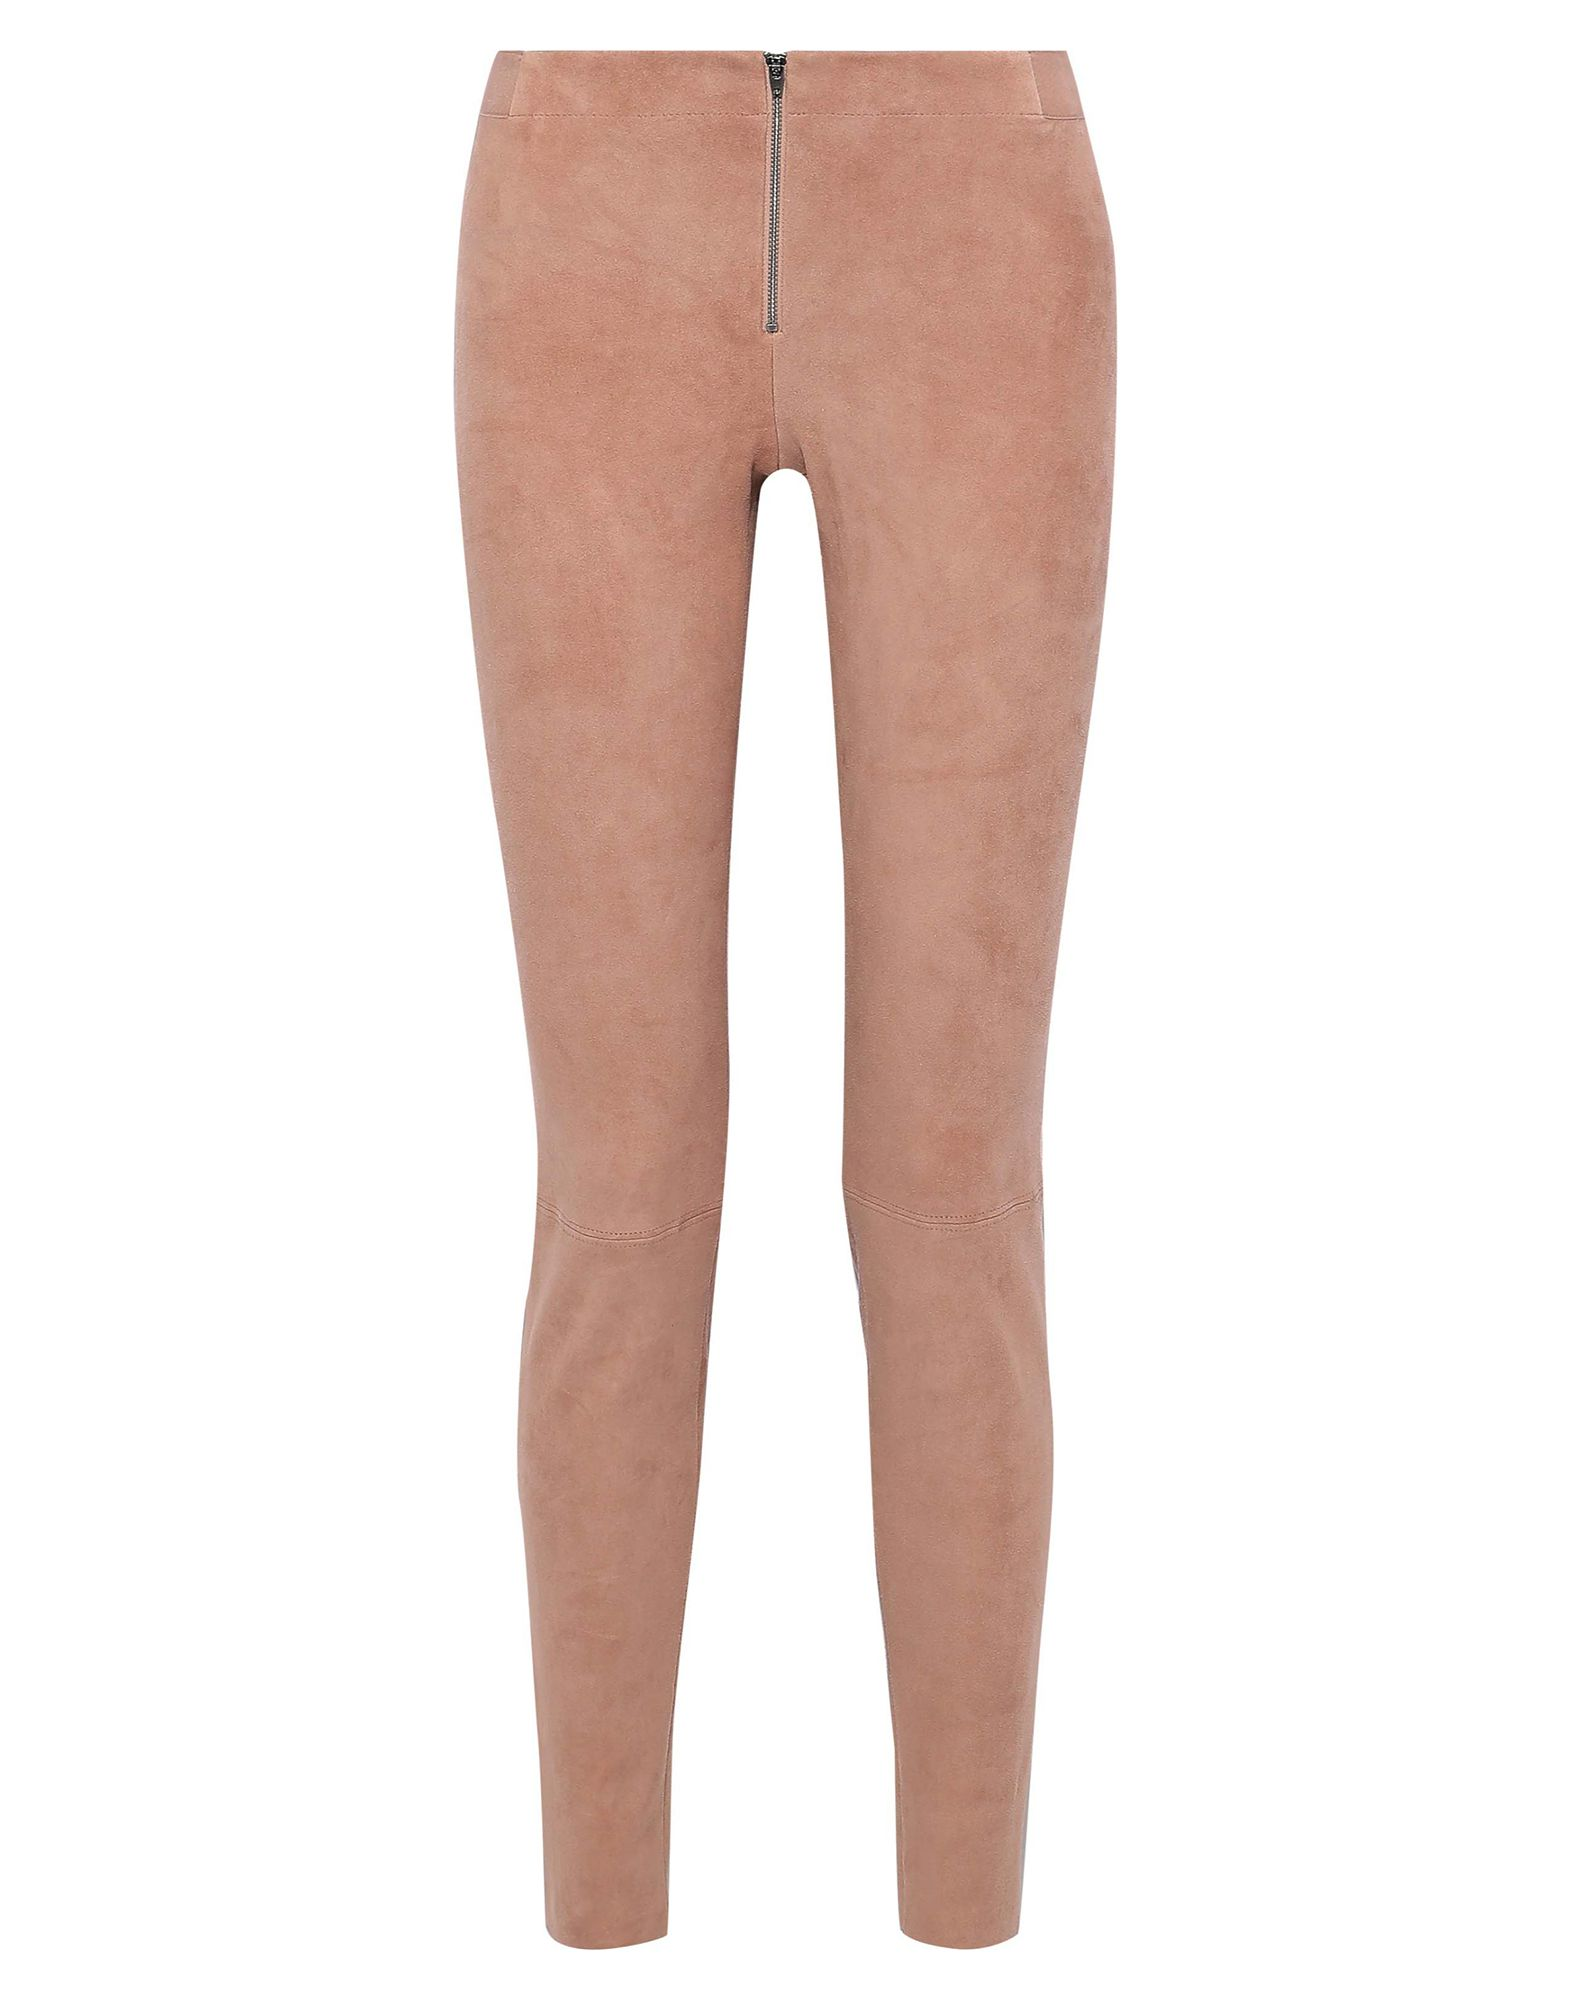 ALICE + OLIVIA Leggings. leather, solid color, no appliqués, low waisted, slim fit, straight leg, zipper closure, no pockets, raw-cut hem, contains non-textile parts of animal origin, suede effect. 100% Lambskin, Sheepskin